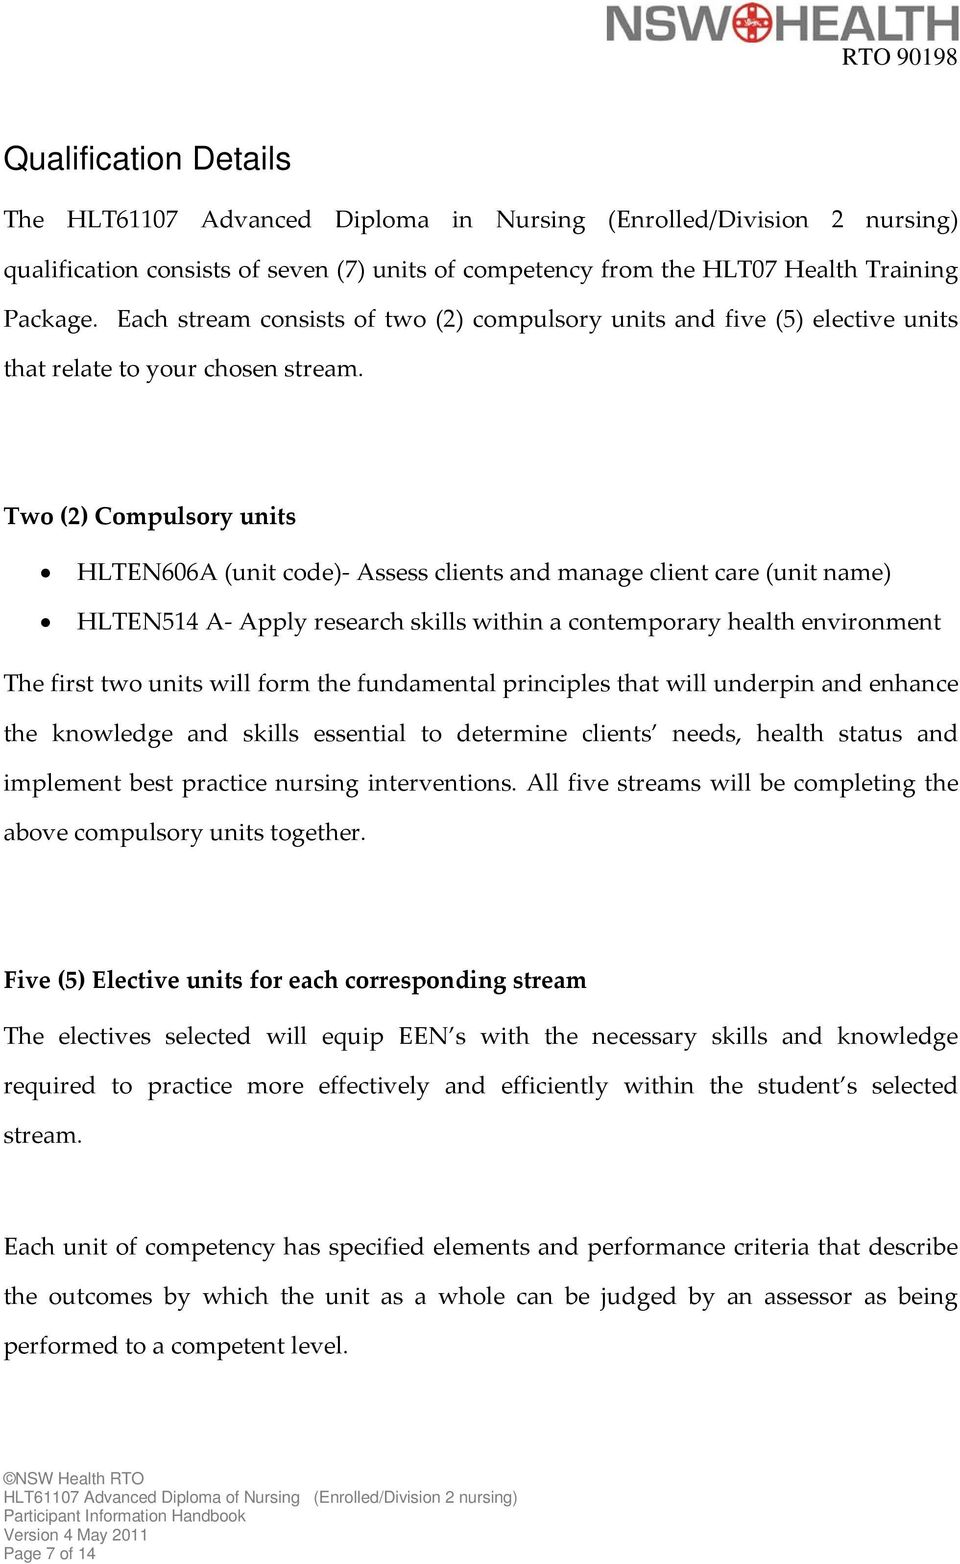 Two (2) Compulsory units HLTEN606A (unit code)- Assess clients and manage client care (unit name) HLTEN514 A- Apply research skills within a contemporary health environment The first two units will